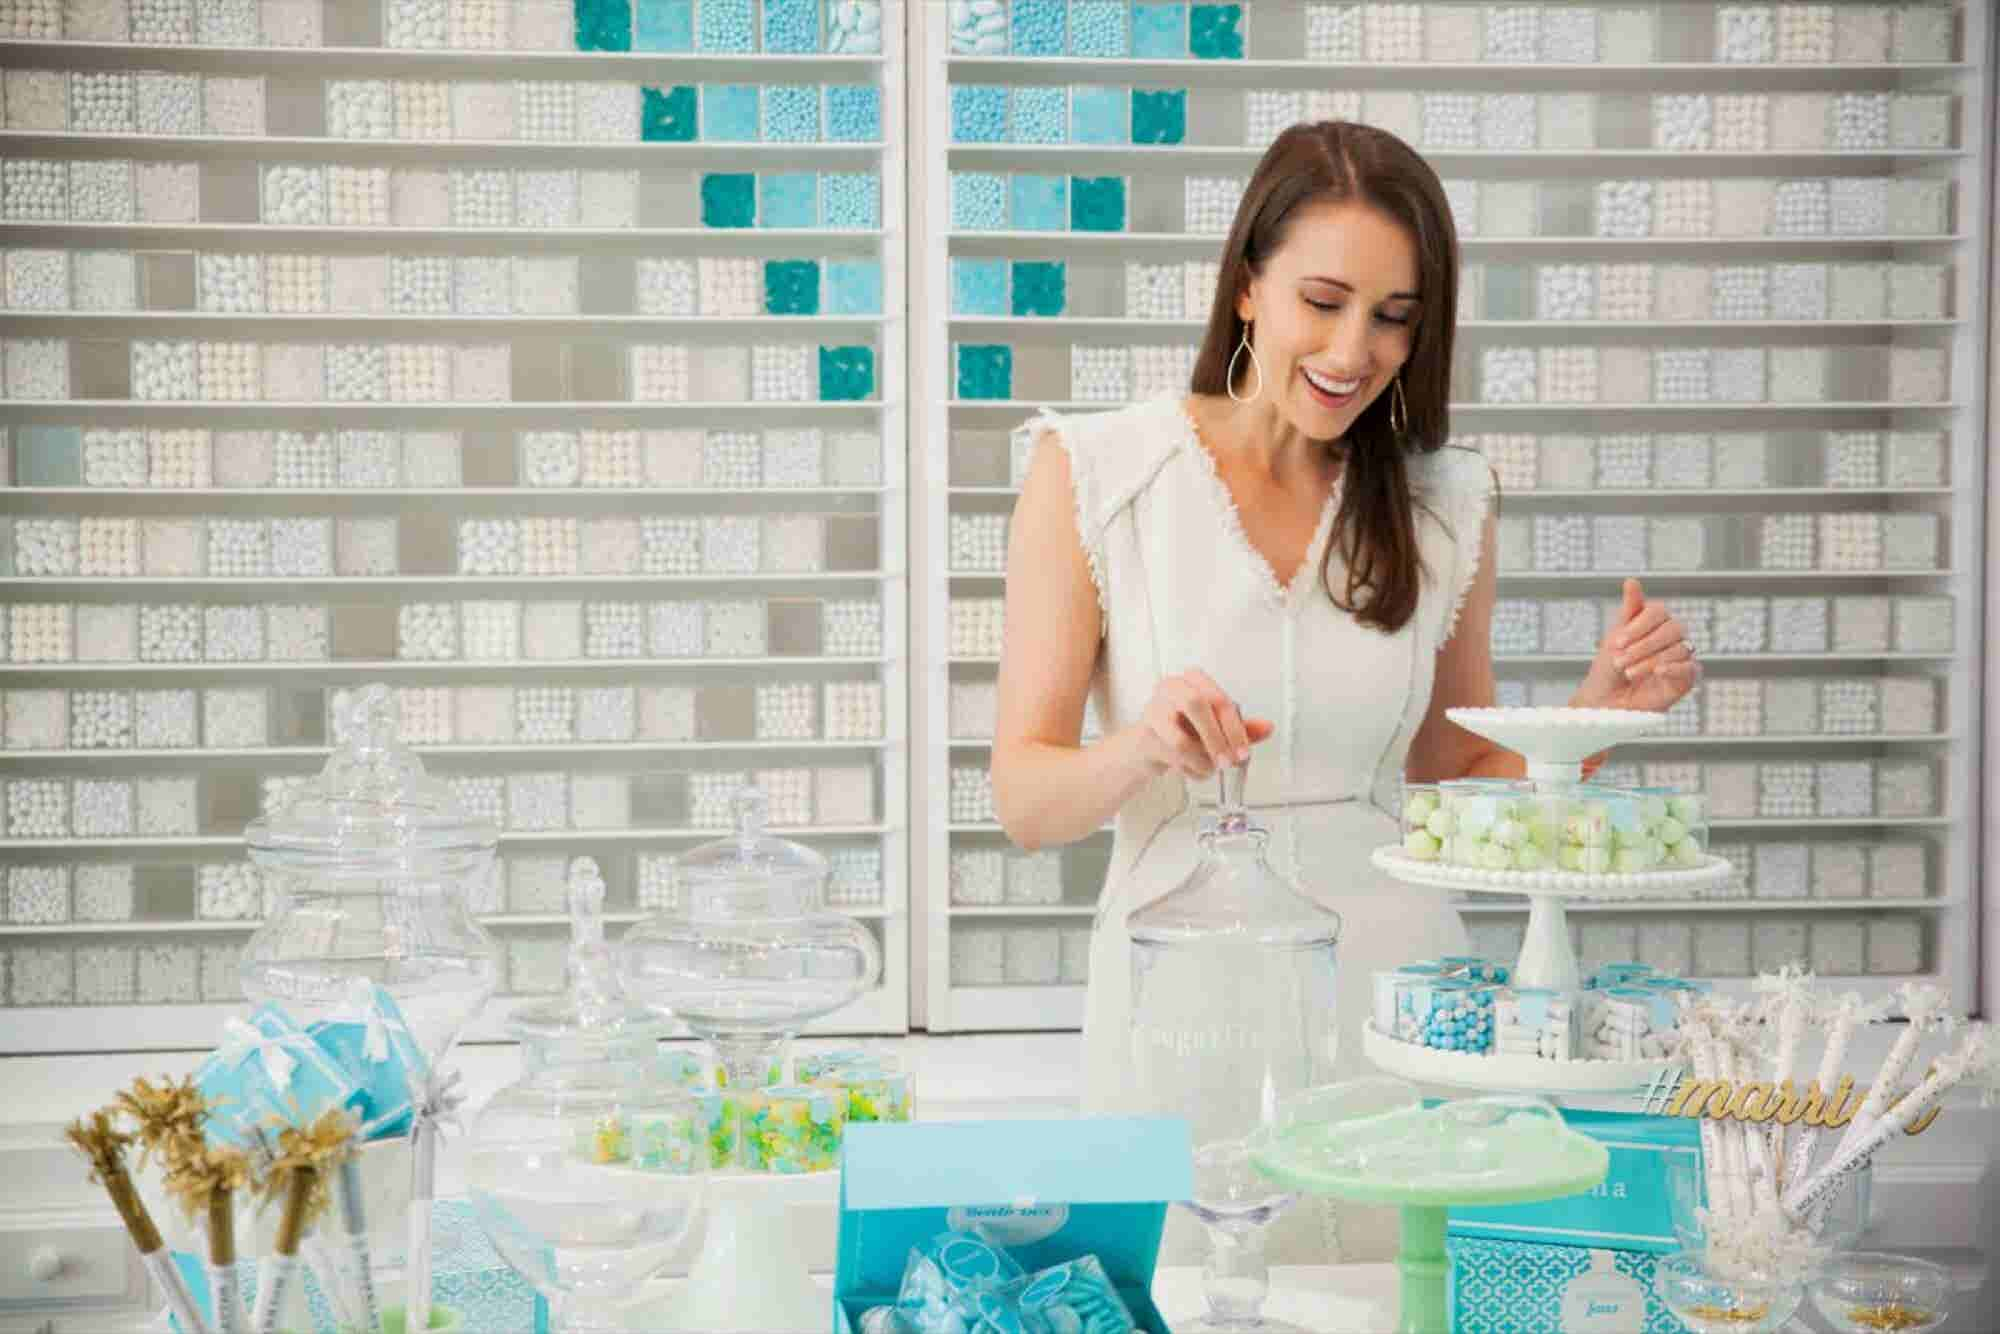 How a First Date Led to Multimillion-Dollar Confection Company Sugarfina